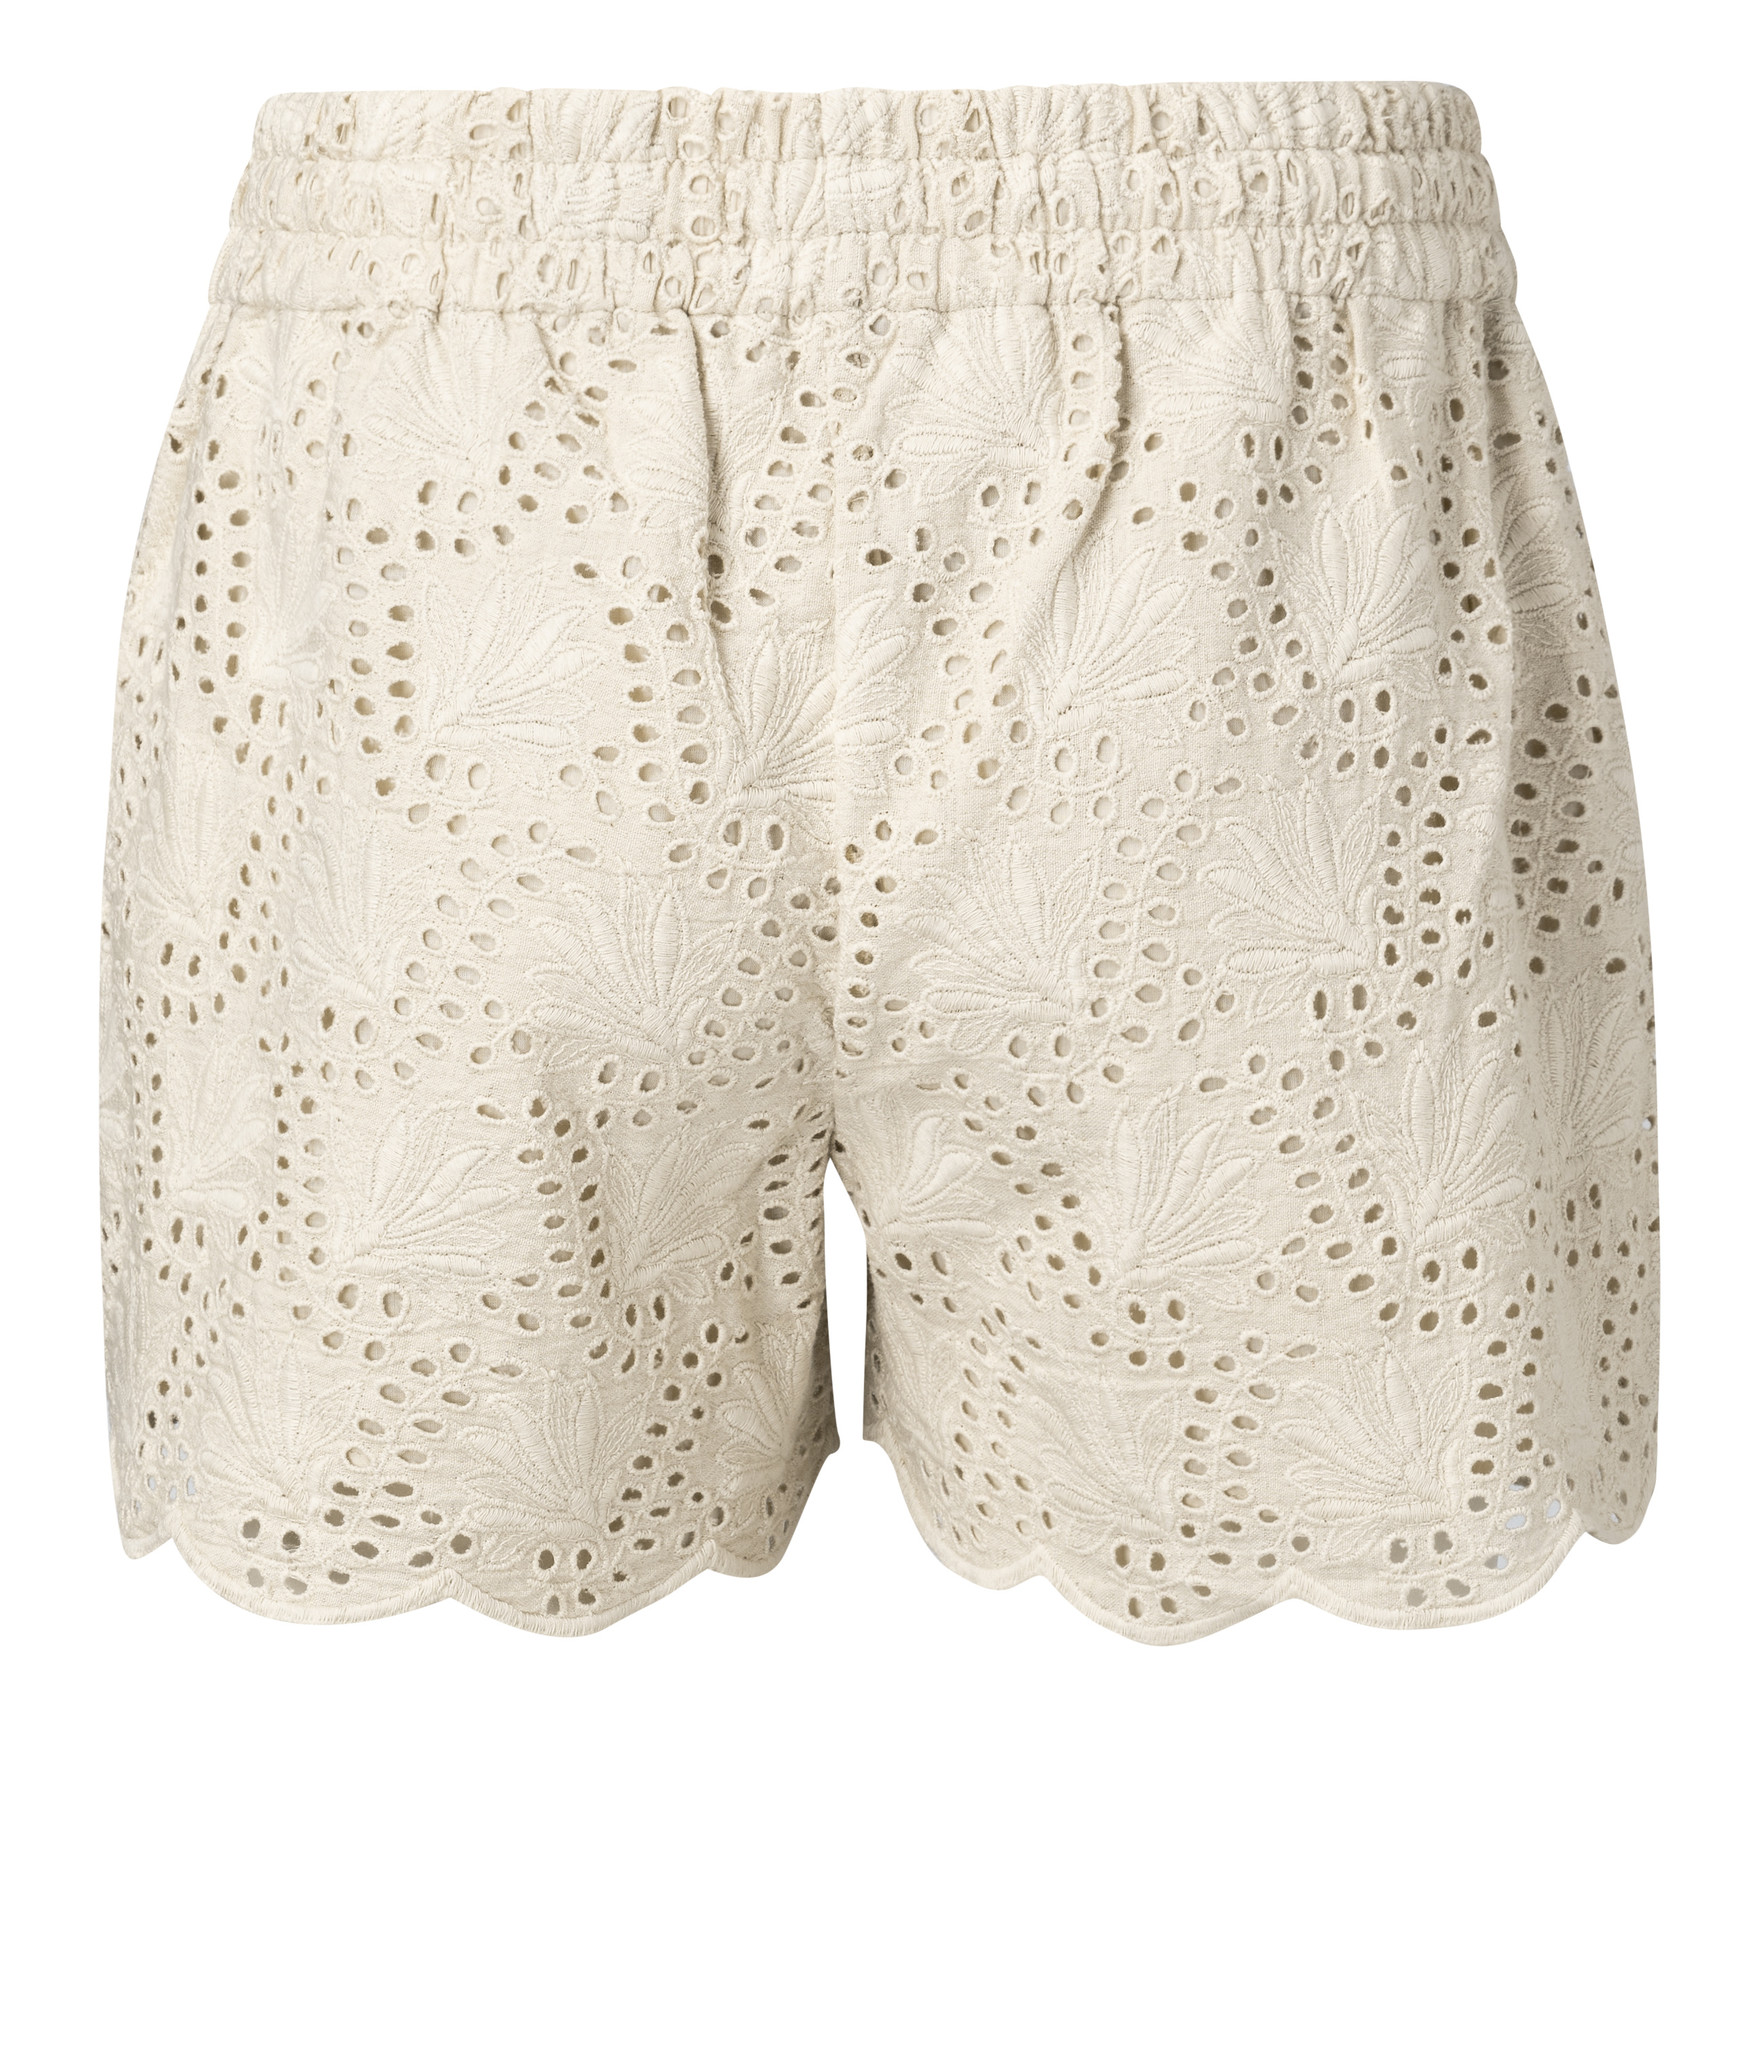 yaya Shorts with broderie 123155-014-2